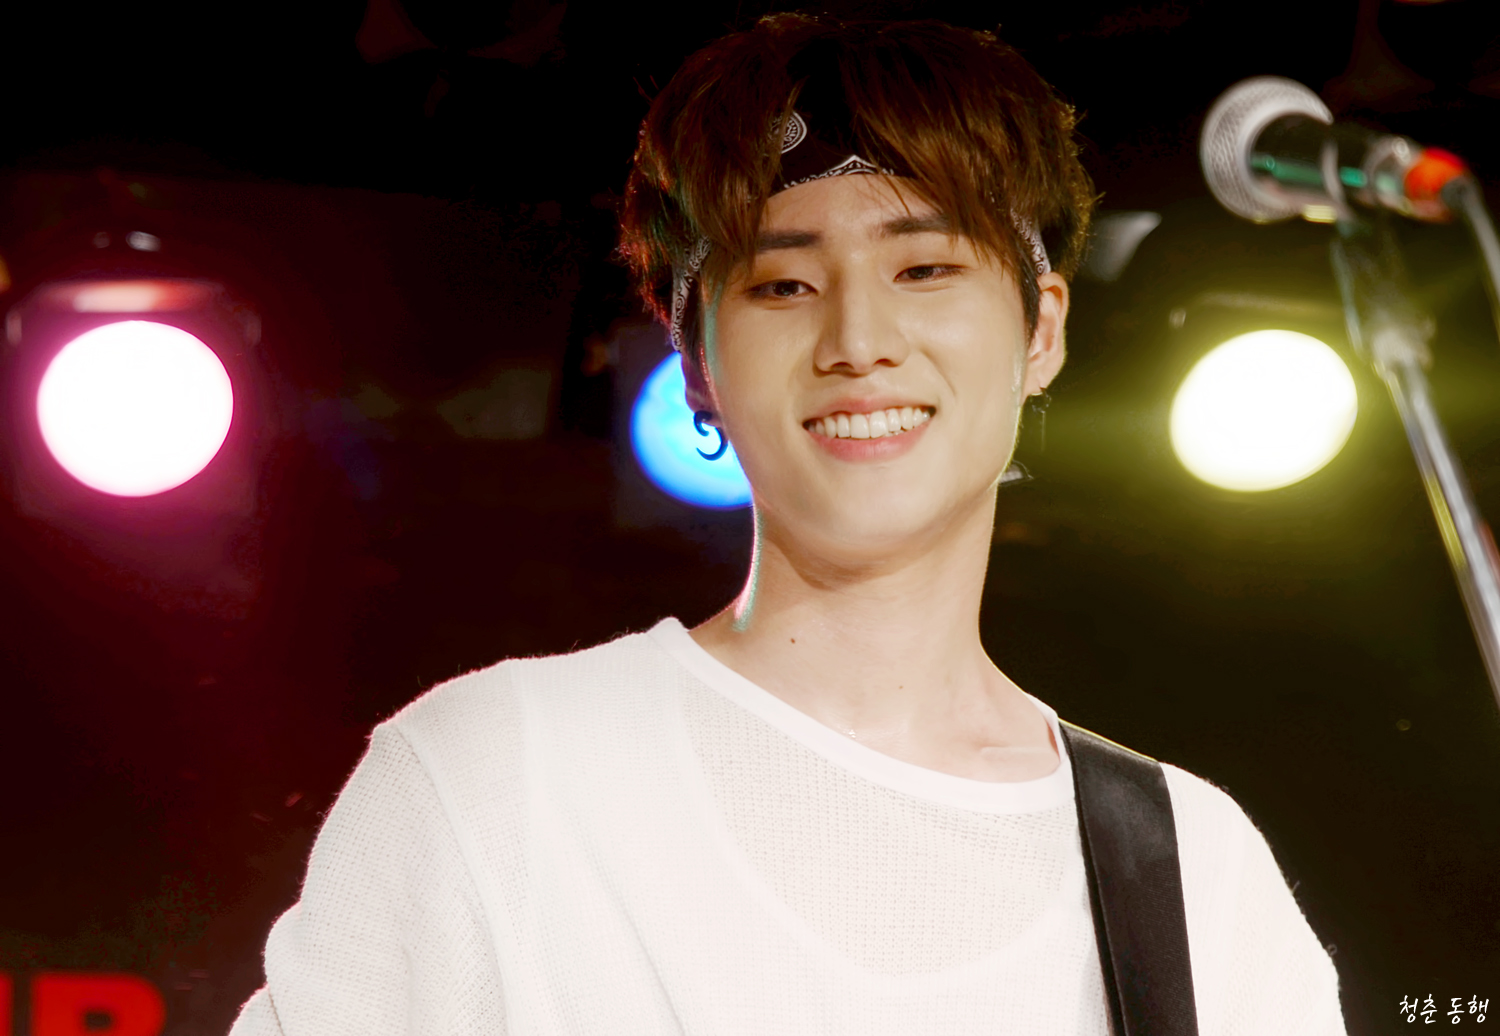 young k Kang young-hyun (korean:강영현 born december 19, 1993), better known by his stage name young k, is a south korean musician, singer, songwriter and rapper.